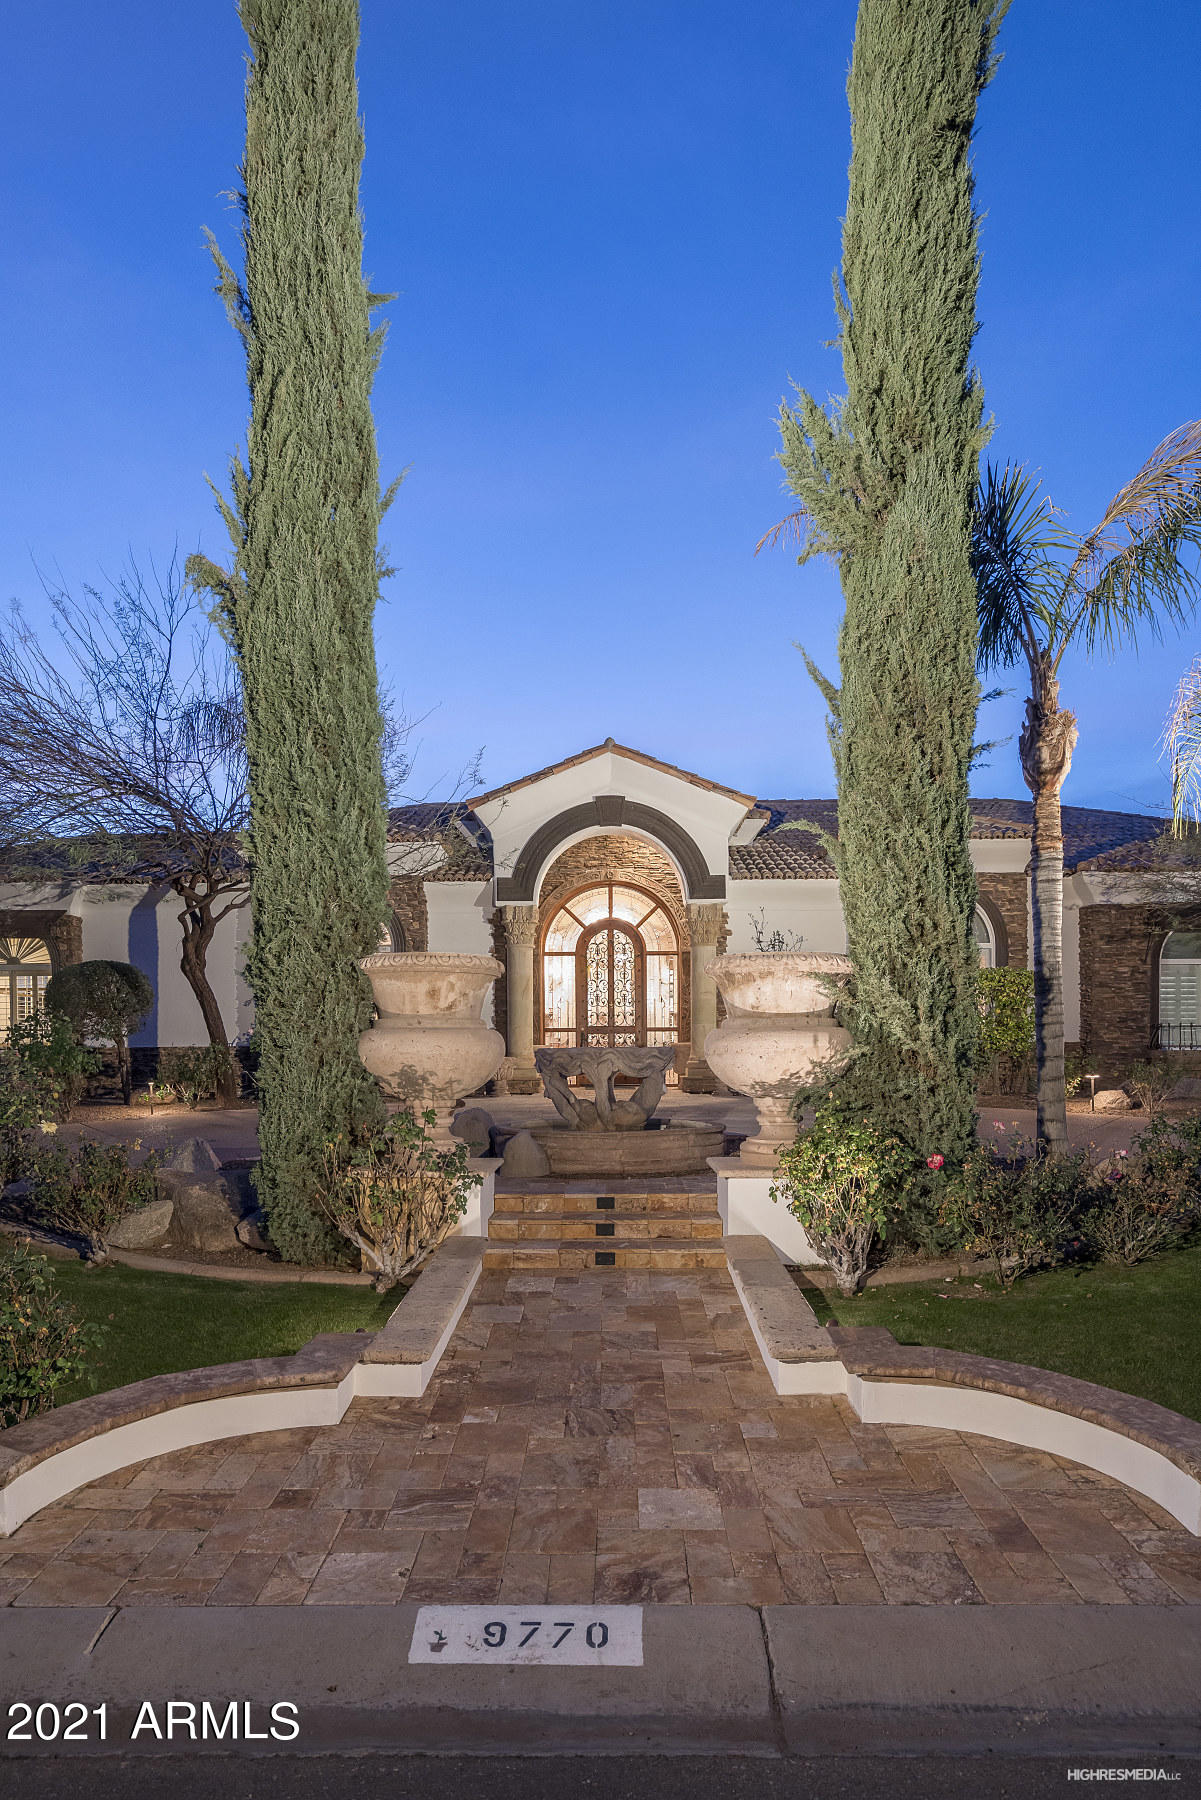 9770 N 56TH Street, Paradise Valley, AZ 85253, 6 Bedrooms Bedrooms, ,Residential Lease,For Rent,9770 N 56TH Street,6194594